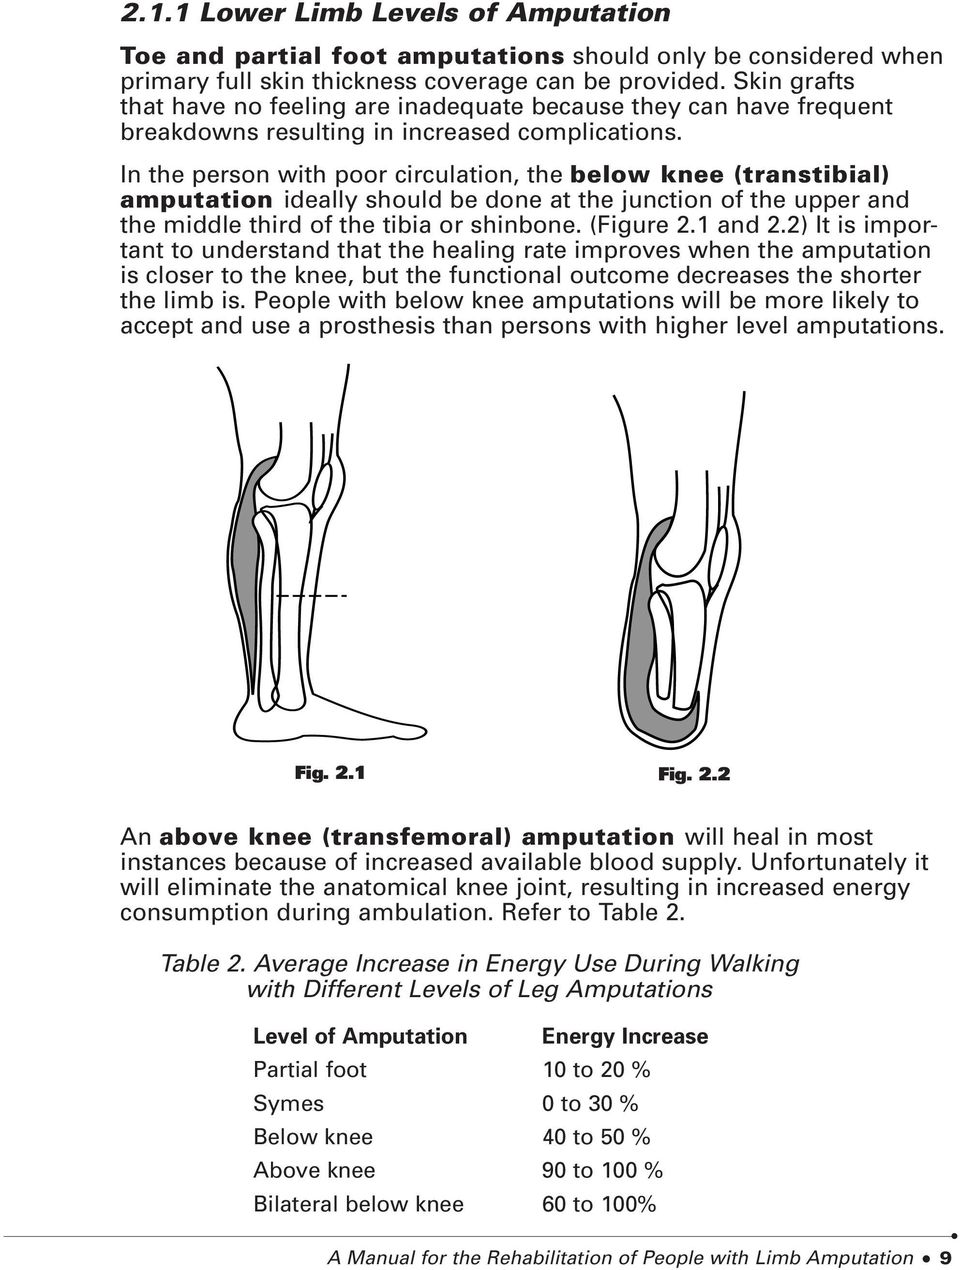 In the person with poor circulation, the below knee (transtibial) amputation ideally should be done at the junction of the upper and the middle third of the tibia or shinbone. (Figure 2.1 and 2.